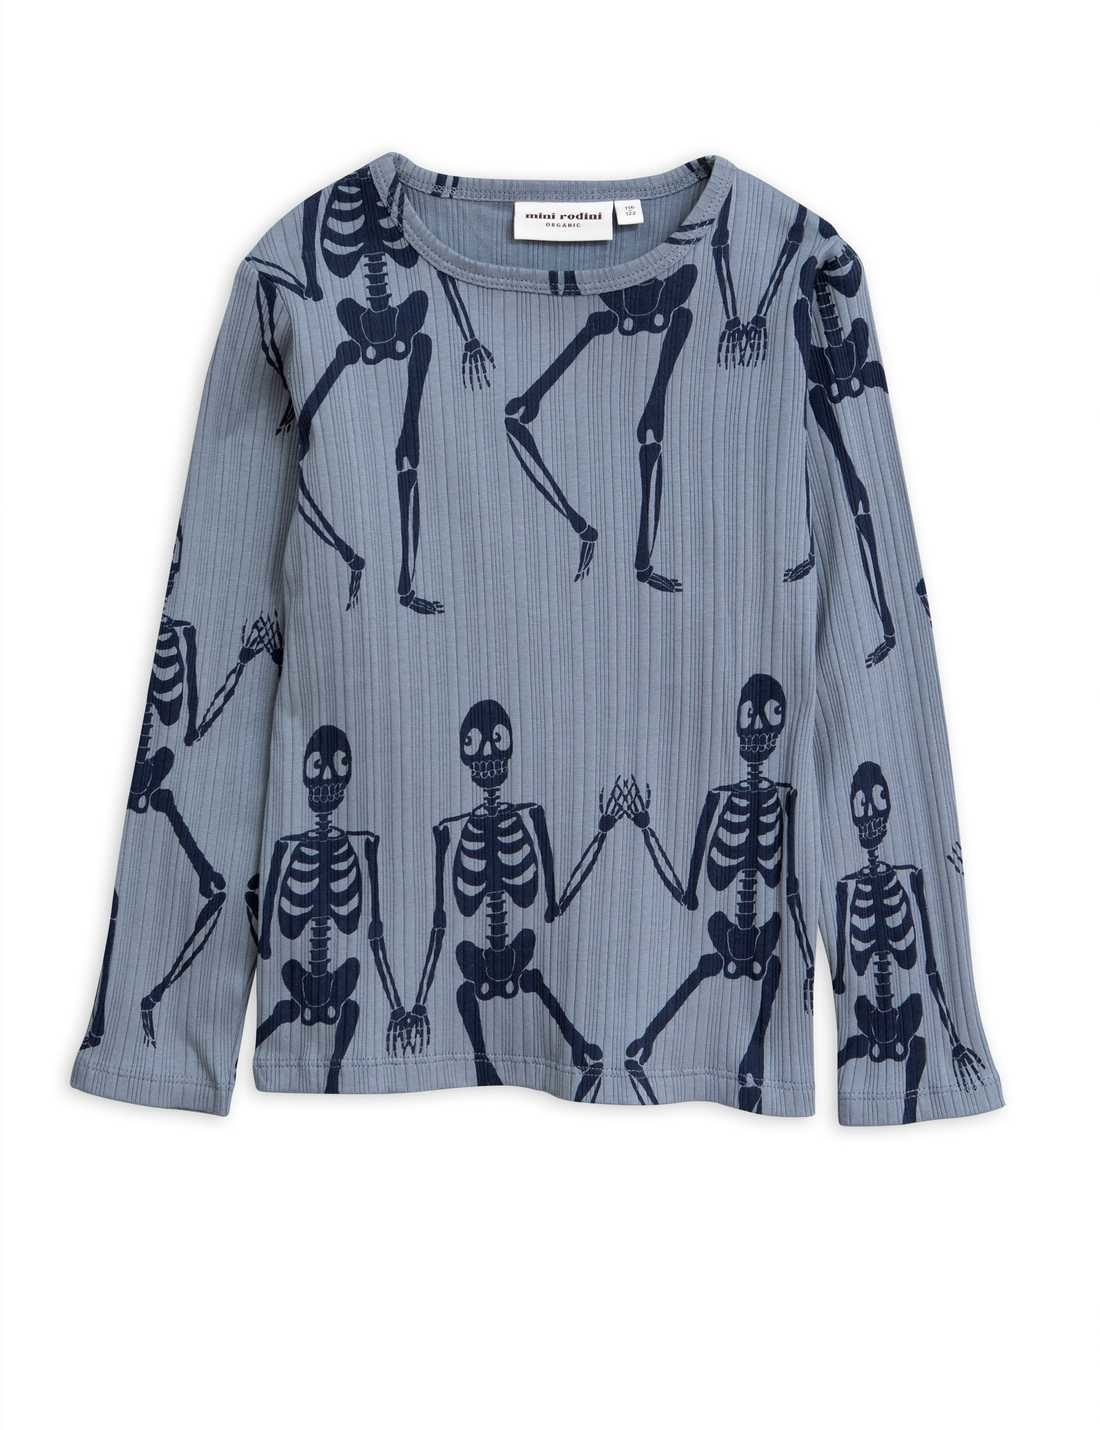 MINI RODINI Skeleton Longsleeve Tee